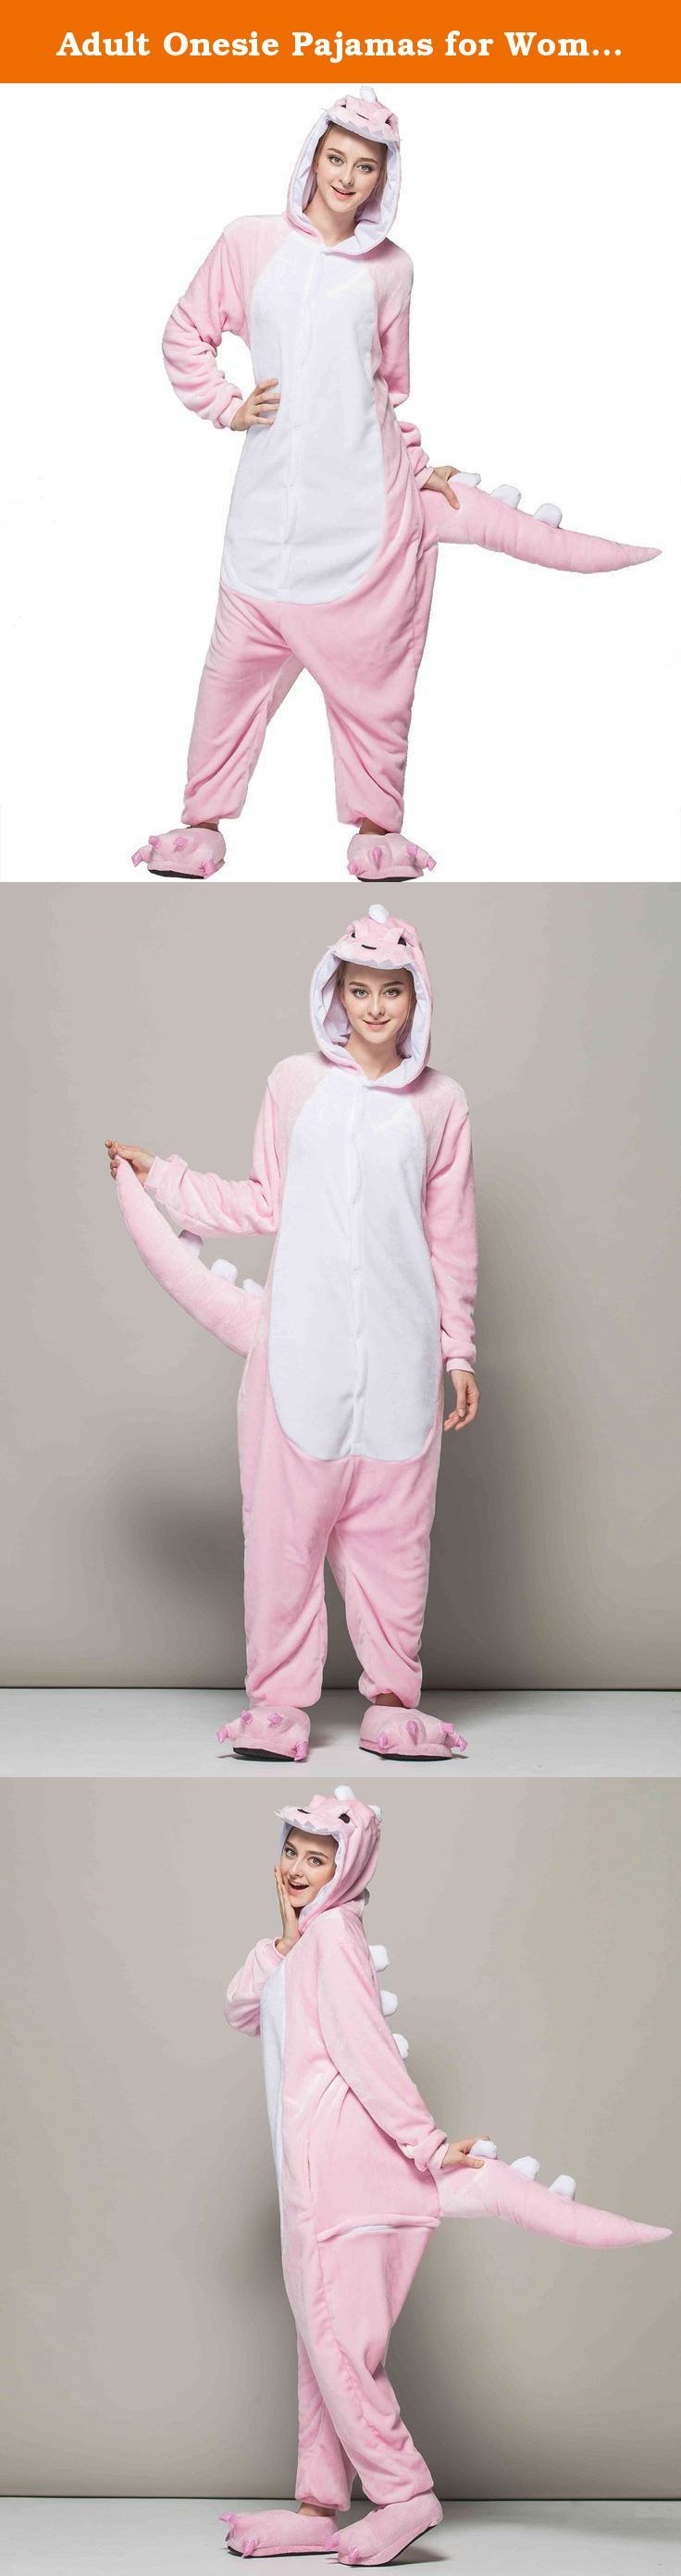 "Adult Onesie Pajamas for Women or Men Christmas with Plus Size (L Fit Height 66""-70"" (168CM-177CM), Pink Dinosaur). iSZEYU Unisex Adult Onesie Pajamas for Women / Mens Pjs for Xmas / Halloween Size Chart: S Fit Height 150CM-160CM (59""-63"") M Fit Height 160CM-168CM (63""-66"") L Fit Height 168CM-177CM (66""-70"") XL Fit Height 177CM-185CM (70""-73"") So measure your height now (Pls choose a bigger size if you are a plus size people) Q: Why our onesies are packed in a vacuum pack bag? A: Dear. As..."